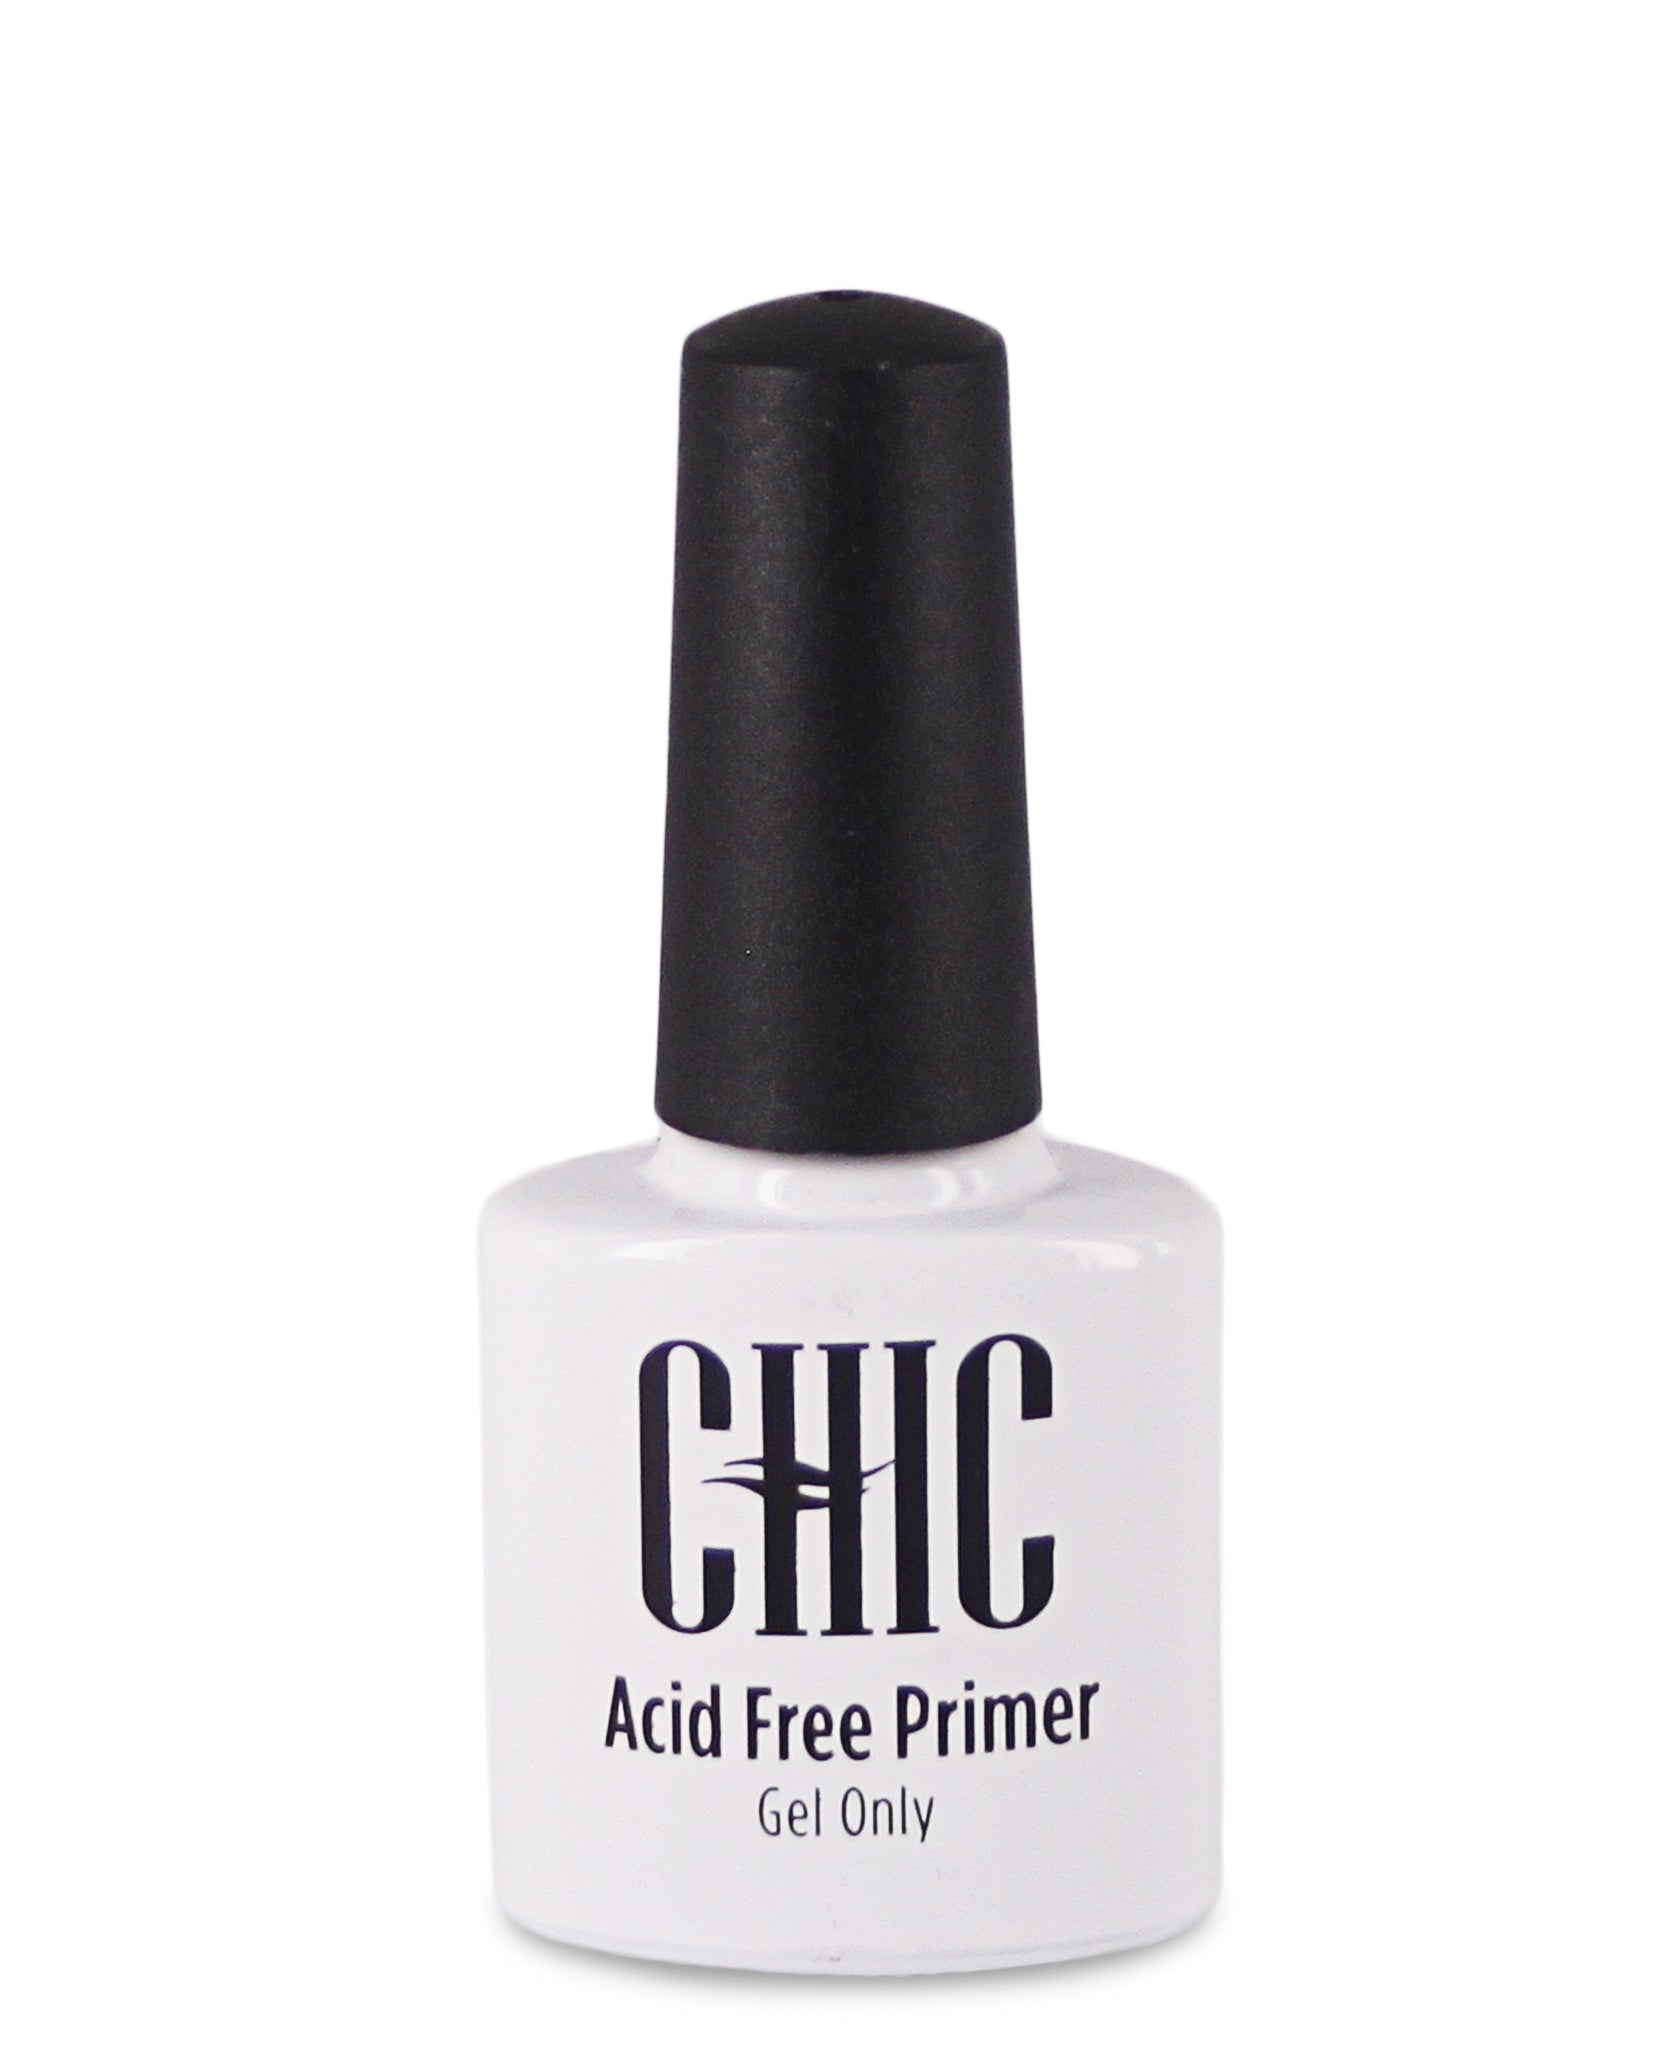 Uv Acid Free Primer - Clear